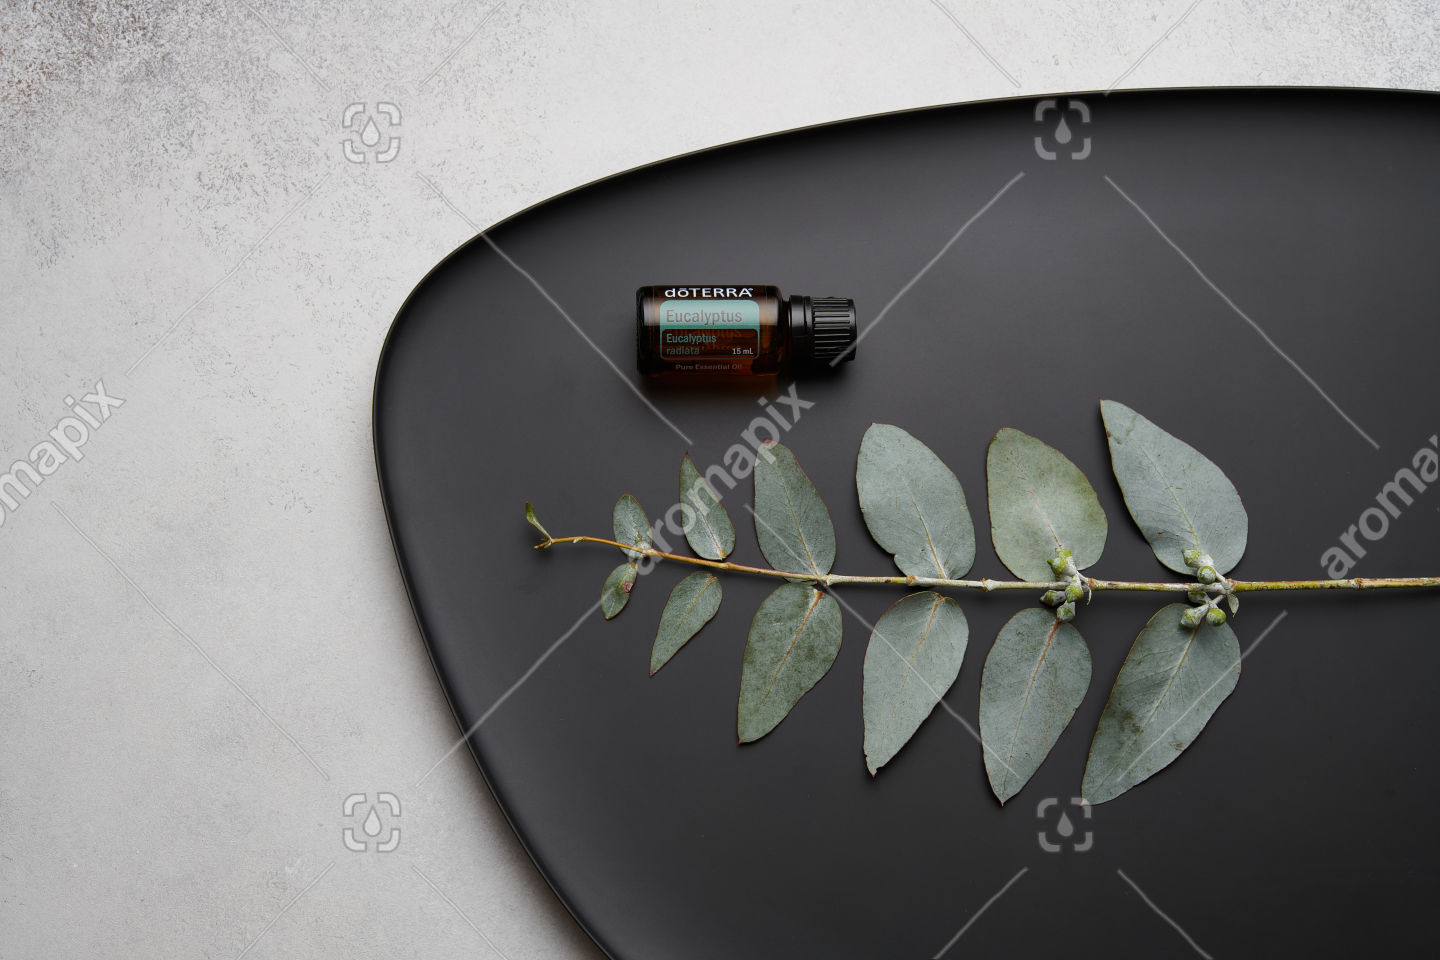 doTERRA Eucalyptus and eucalyptus leaves on black plate